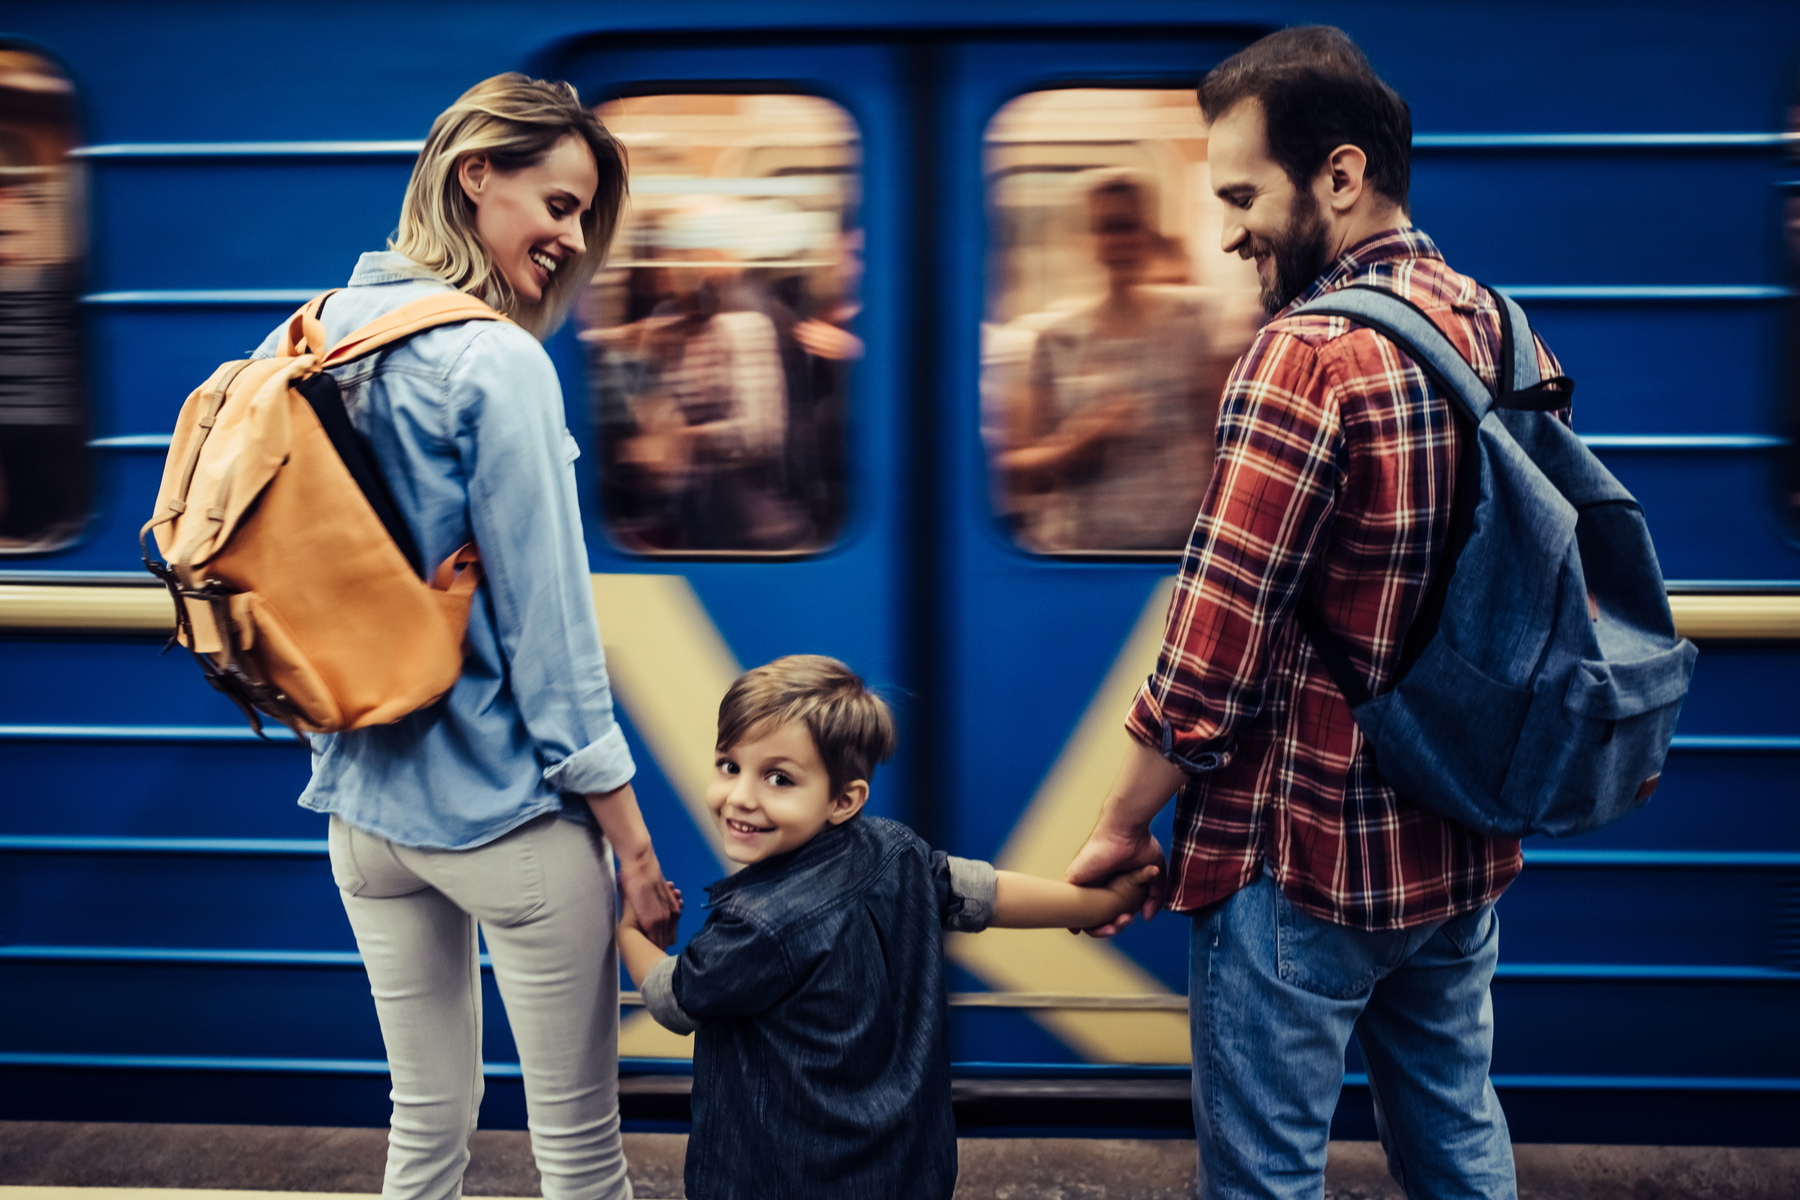 Family waiting for a metro train